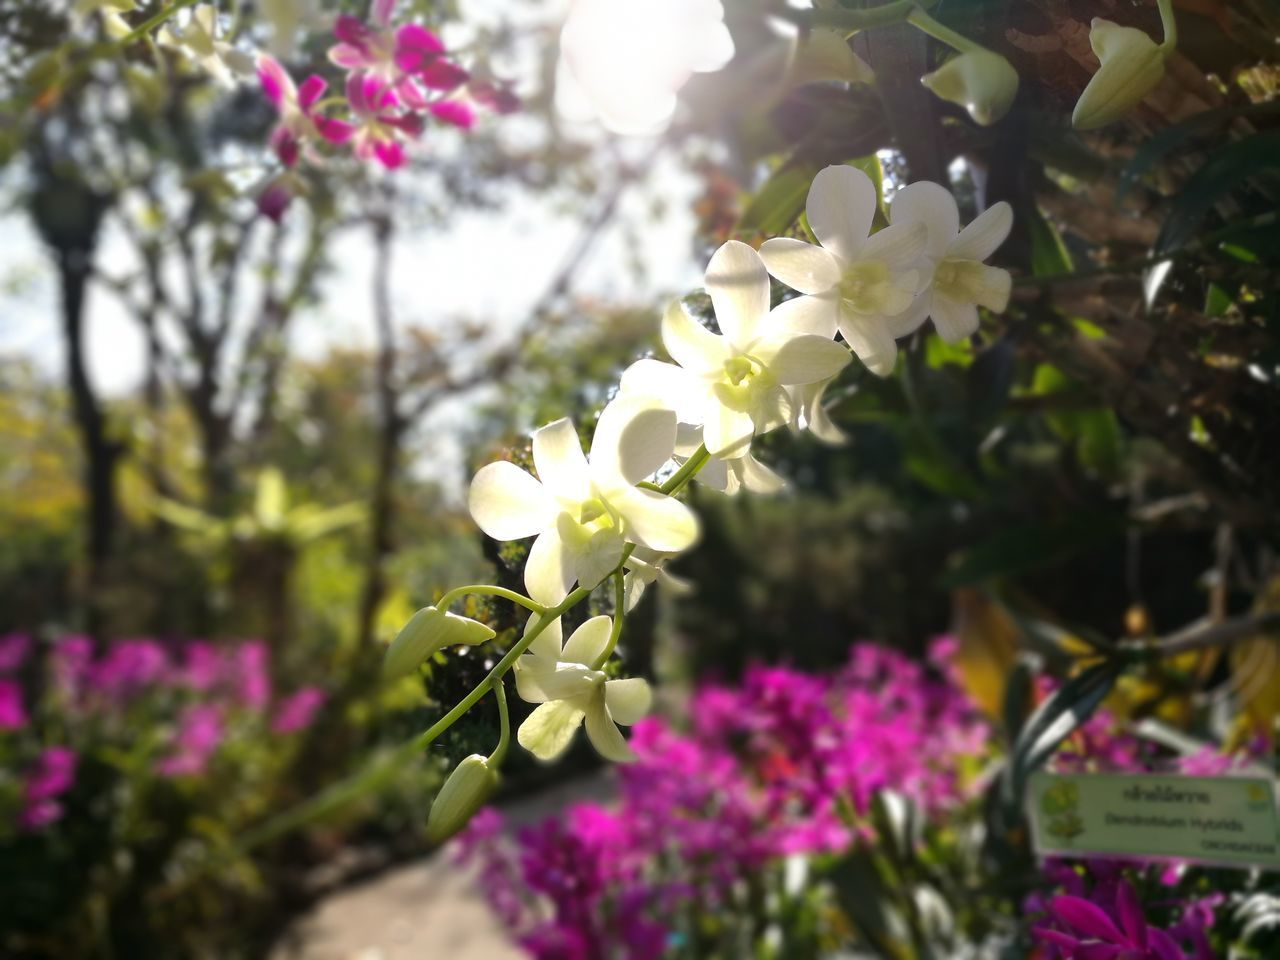 White orchids in morning sun light Backgrounds Flower Head Close-up Focus On Foreground Thailand Light Morning Garden Exotic Flowers Exotic Day Outdoors Freshness Plant Purple Pink Color Petal Nature Beauty In Nature Orchid Growth Hanging Flower White